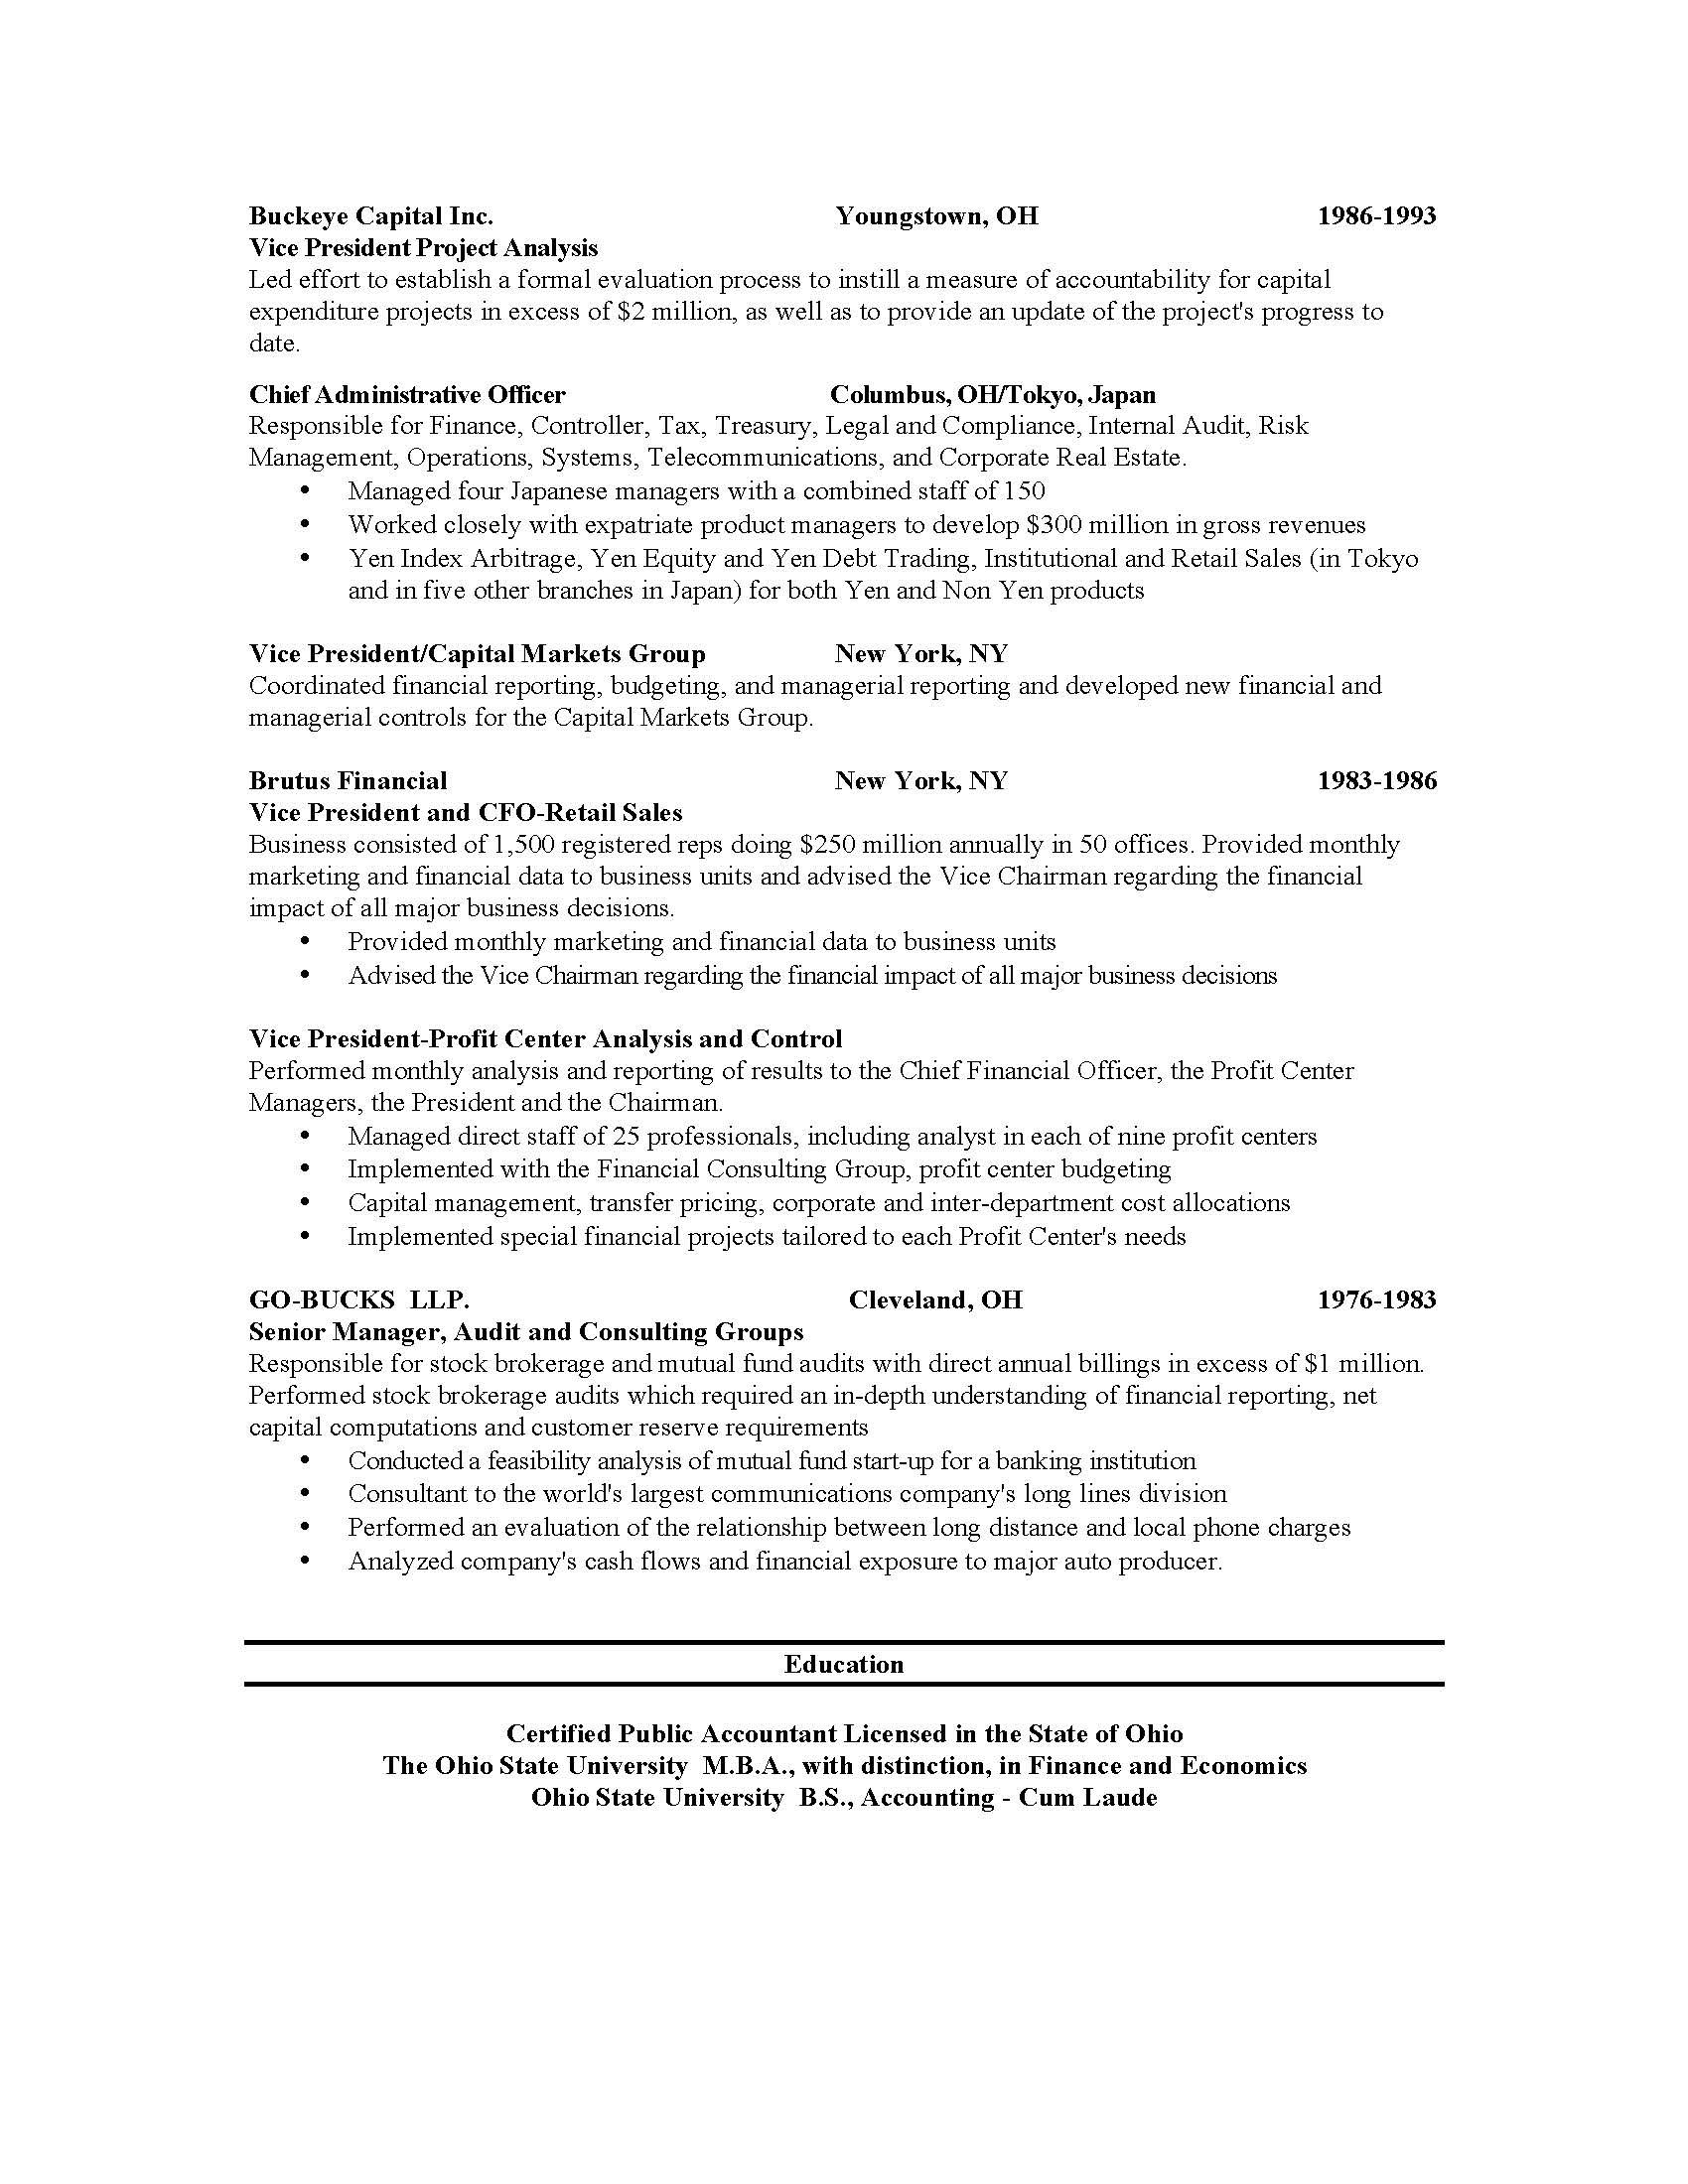 U Of T Resume Examples | Pinterest